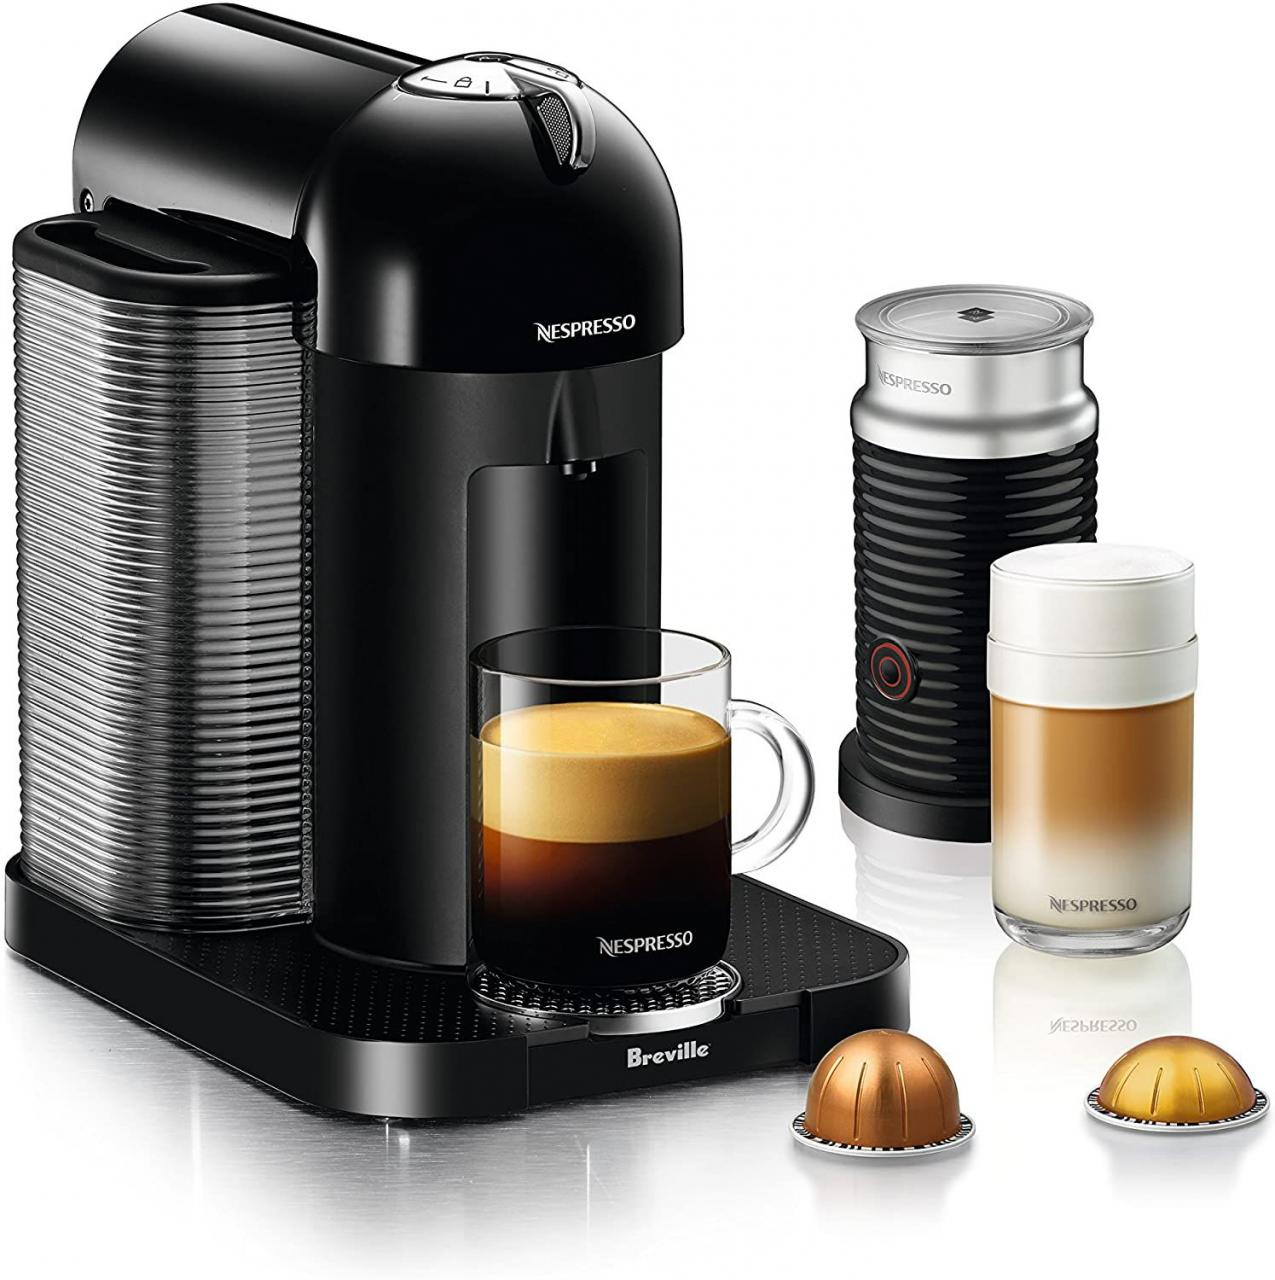 The 9 Best Coffee Pod Machines in 2021